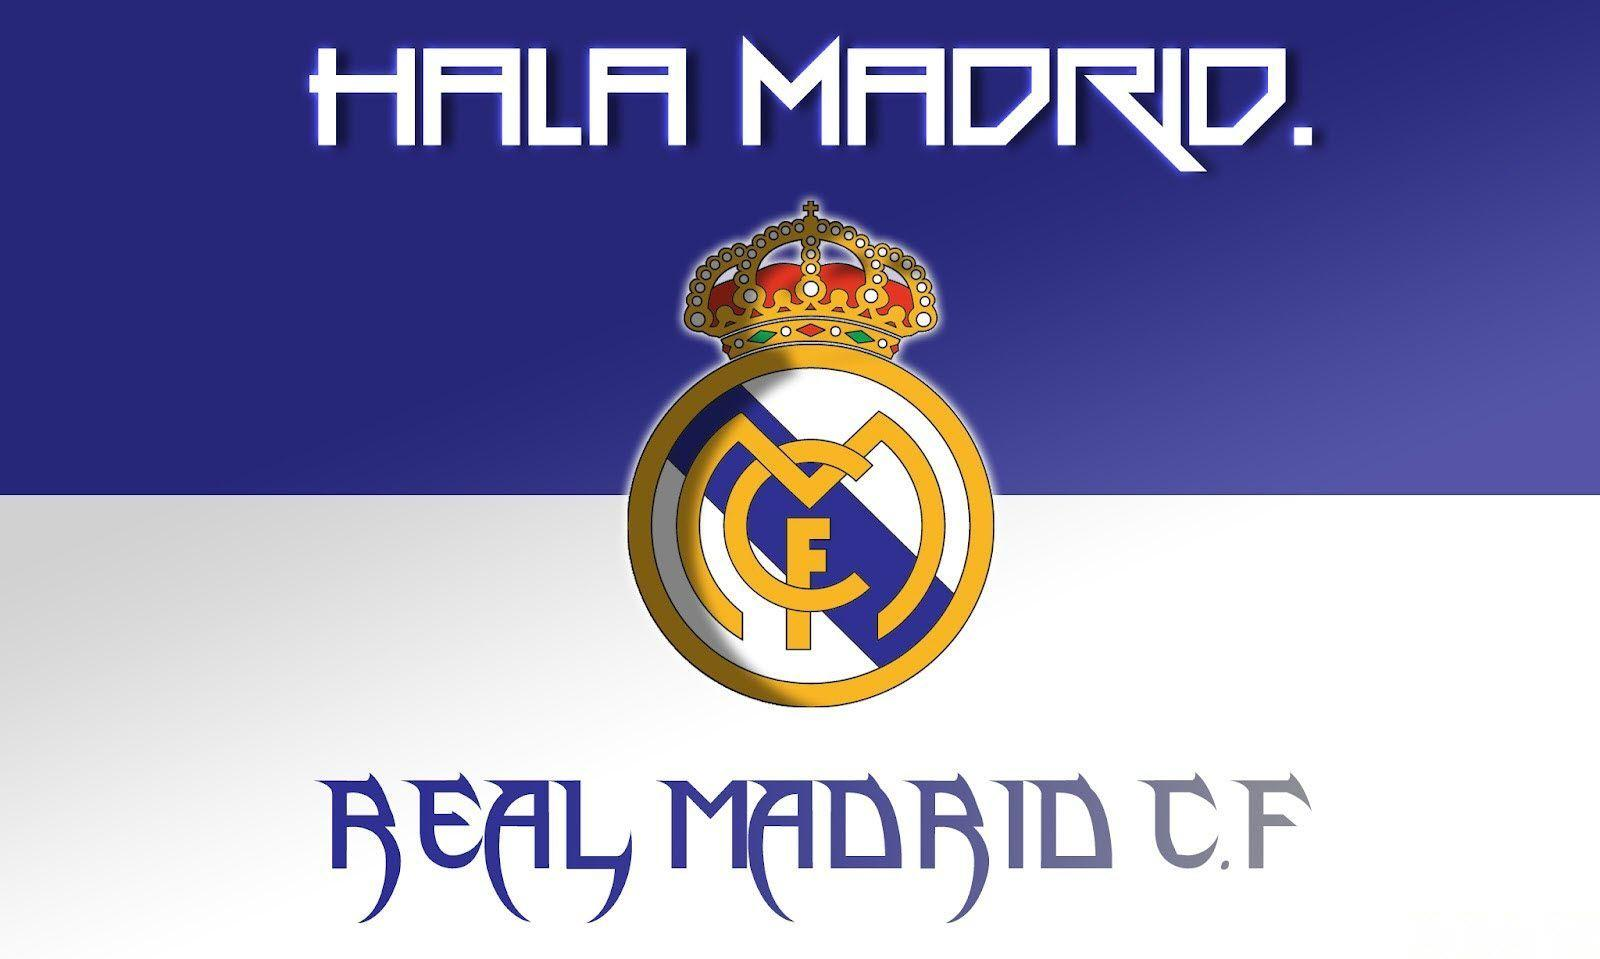 real madrid logo wallpapers for desktop